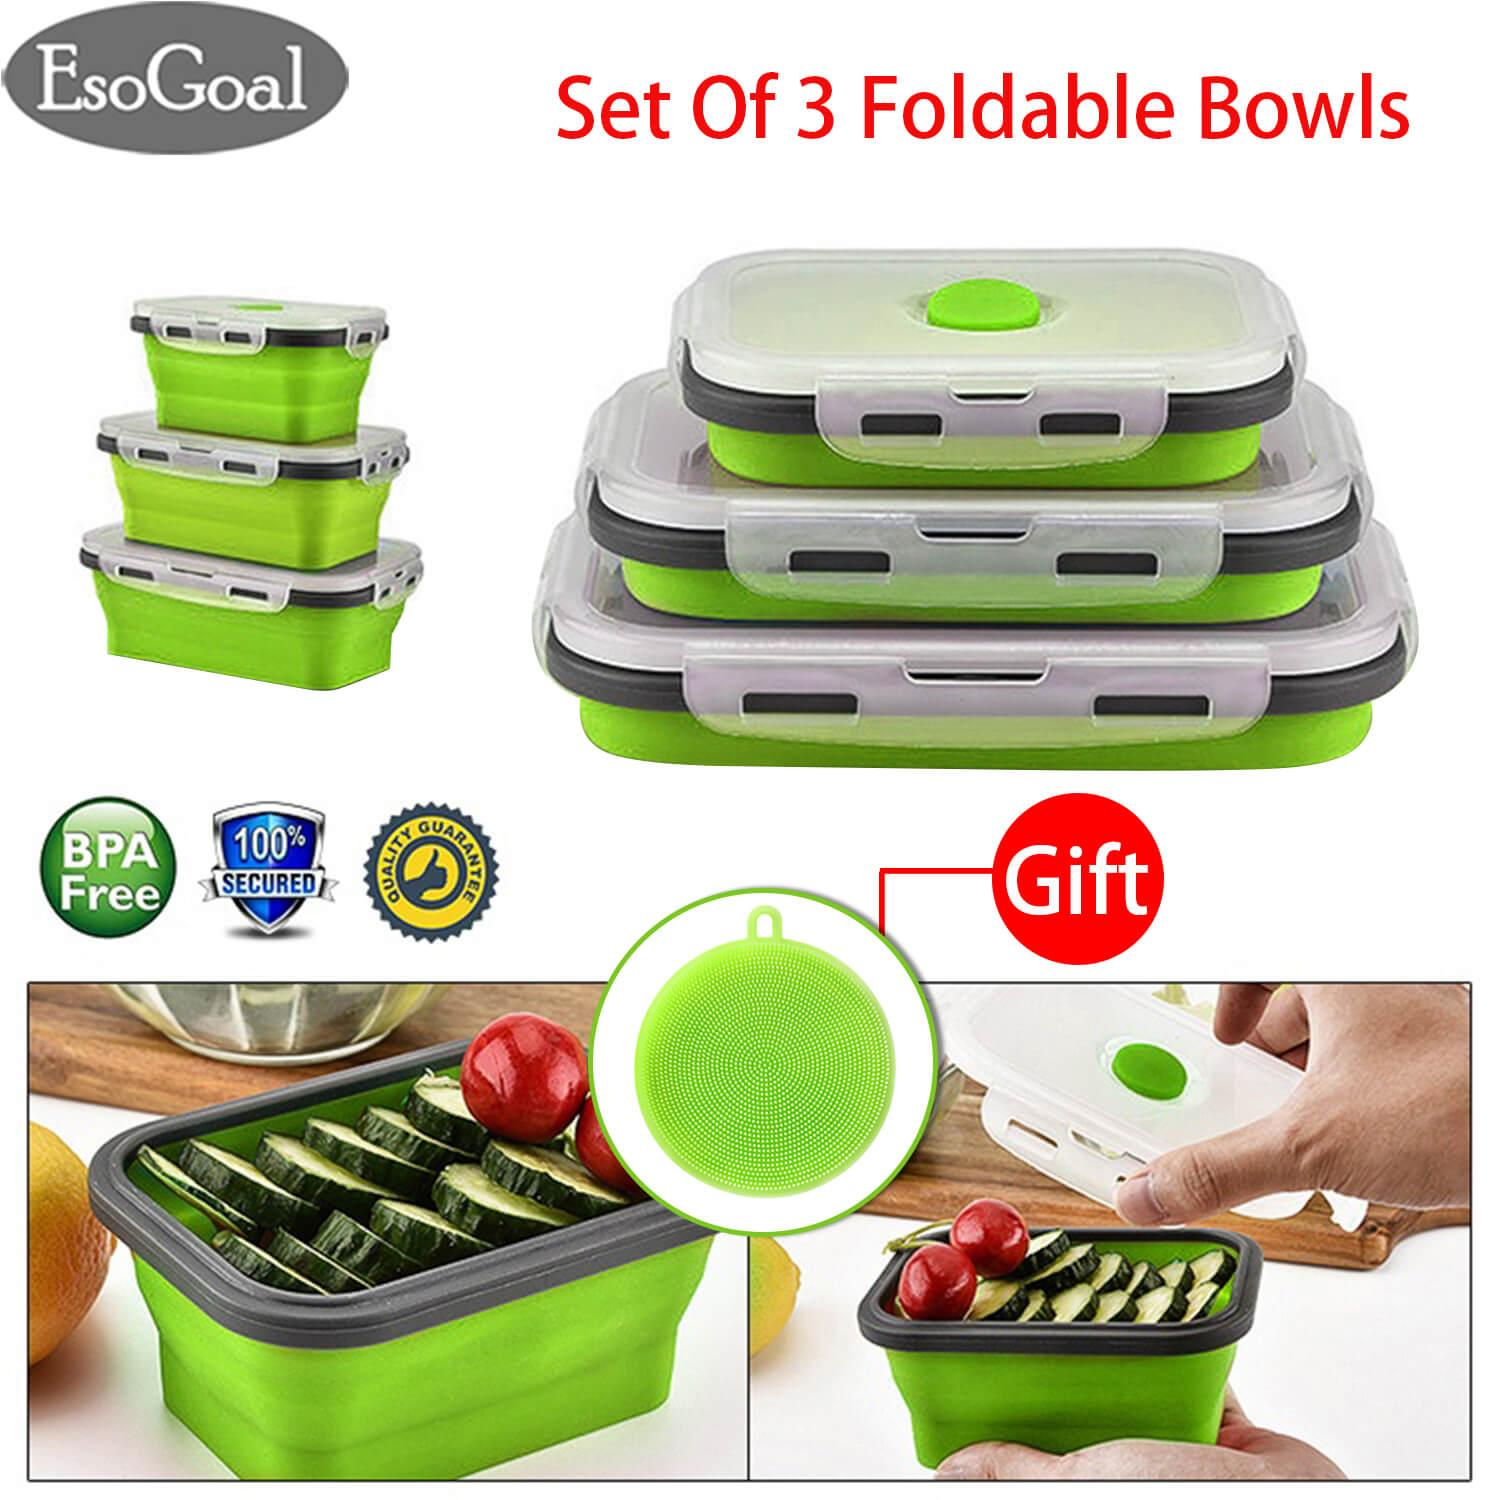 EsoGoal Collapsible Lunch Box Folding Silicone Bowls Portable Foldable Outdoor Retractable Food Storage Containers Lunchbox For School Office Camping Travel